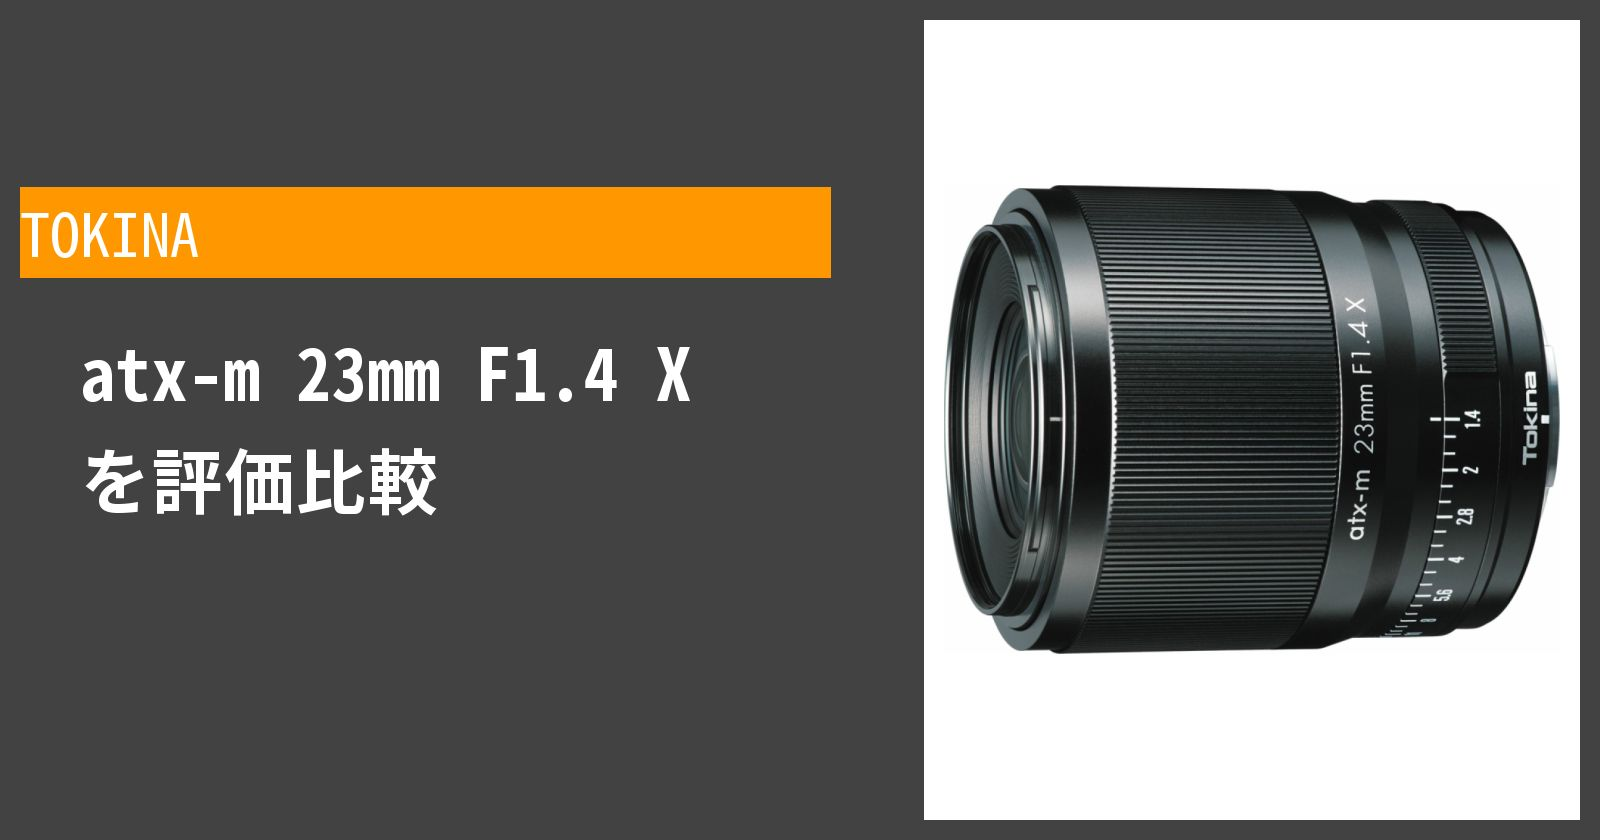 atx-m 23mm F1.4 Xを徹底評価